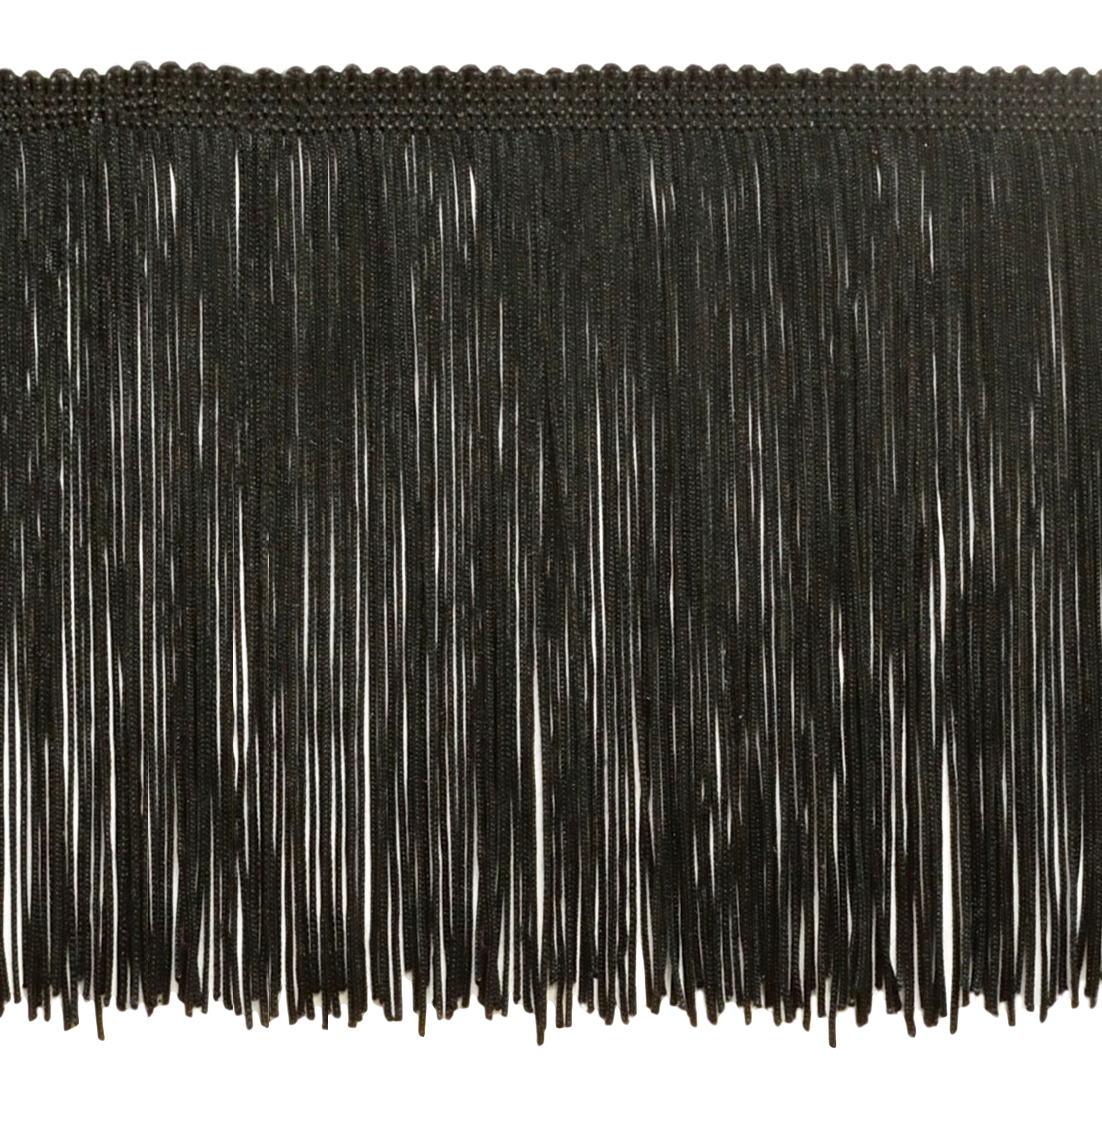 6 Inch Chainette Fringe Trim, Style# CF06 Color: Black - K9, Sold By the Yard